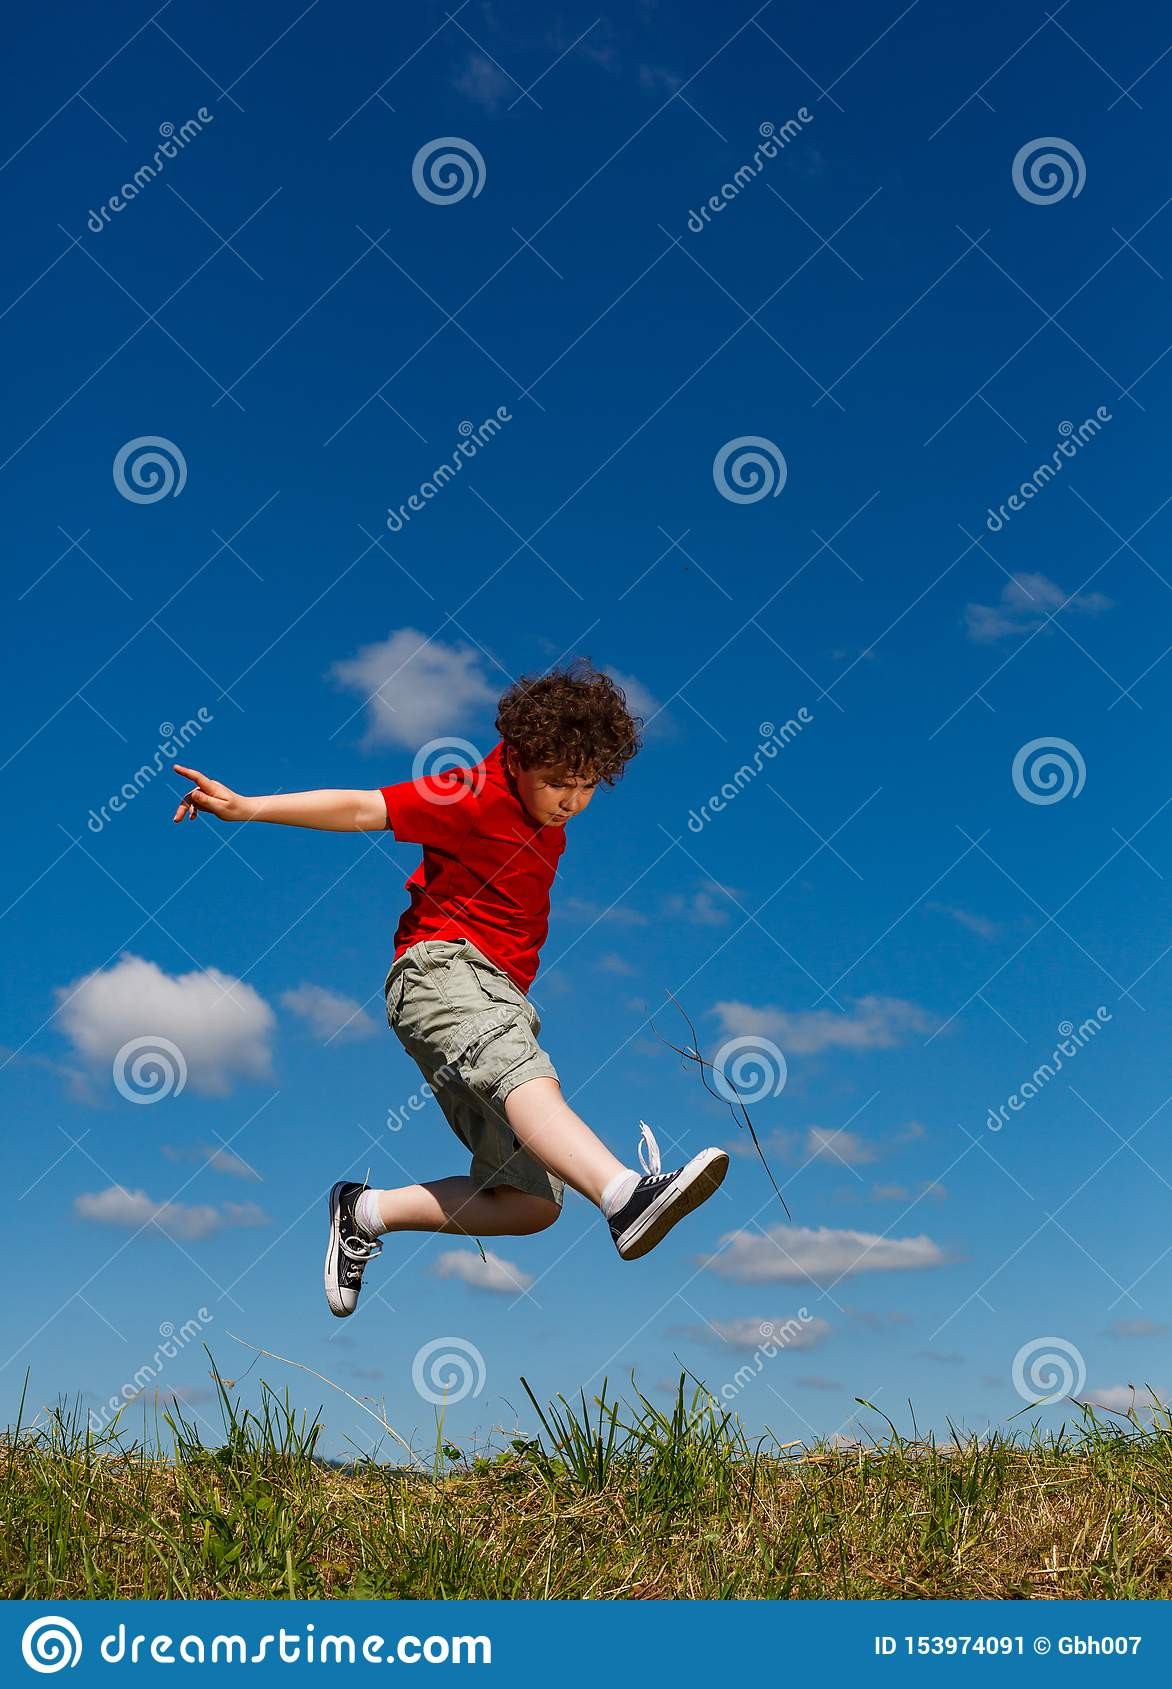 Boy jumping, running against blue sky